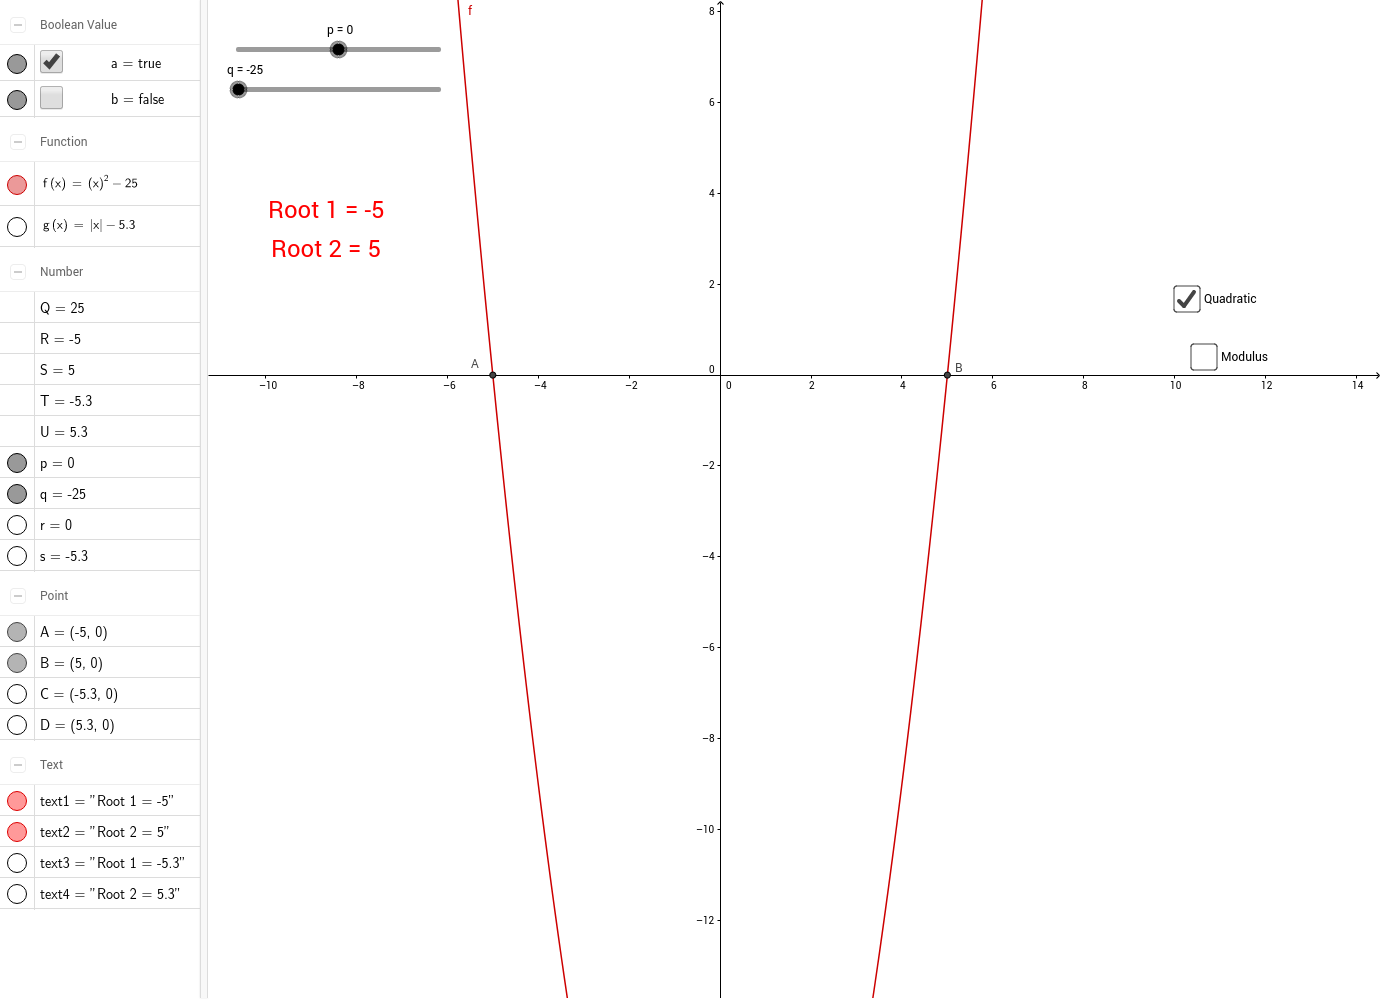 The task is to investigate how translations affect the roots of quadratic  and modulus functions. This geogebra worksheet plots f(x)=(x+p)^2+q and ...